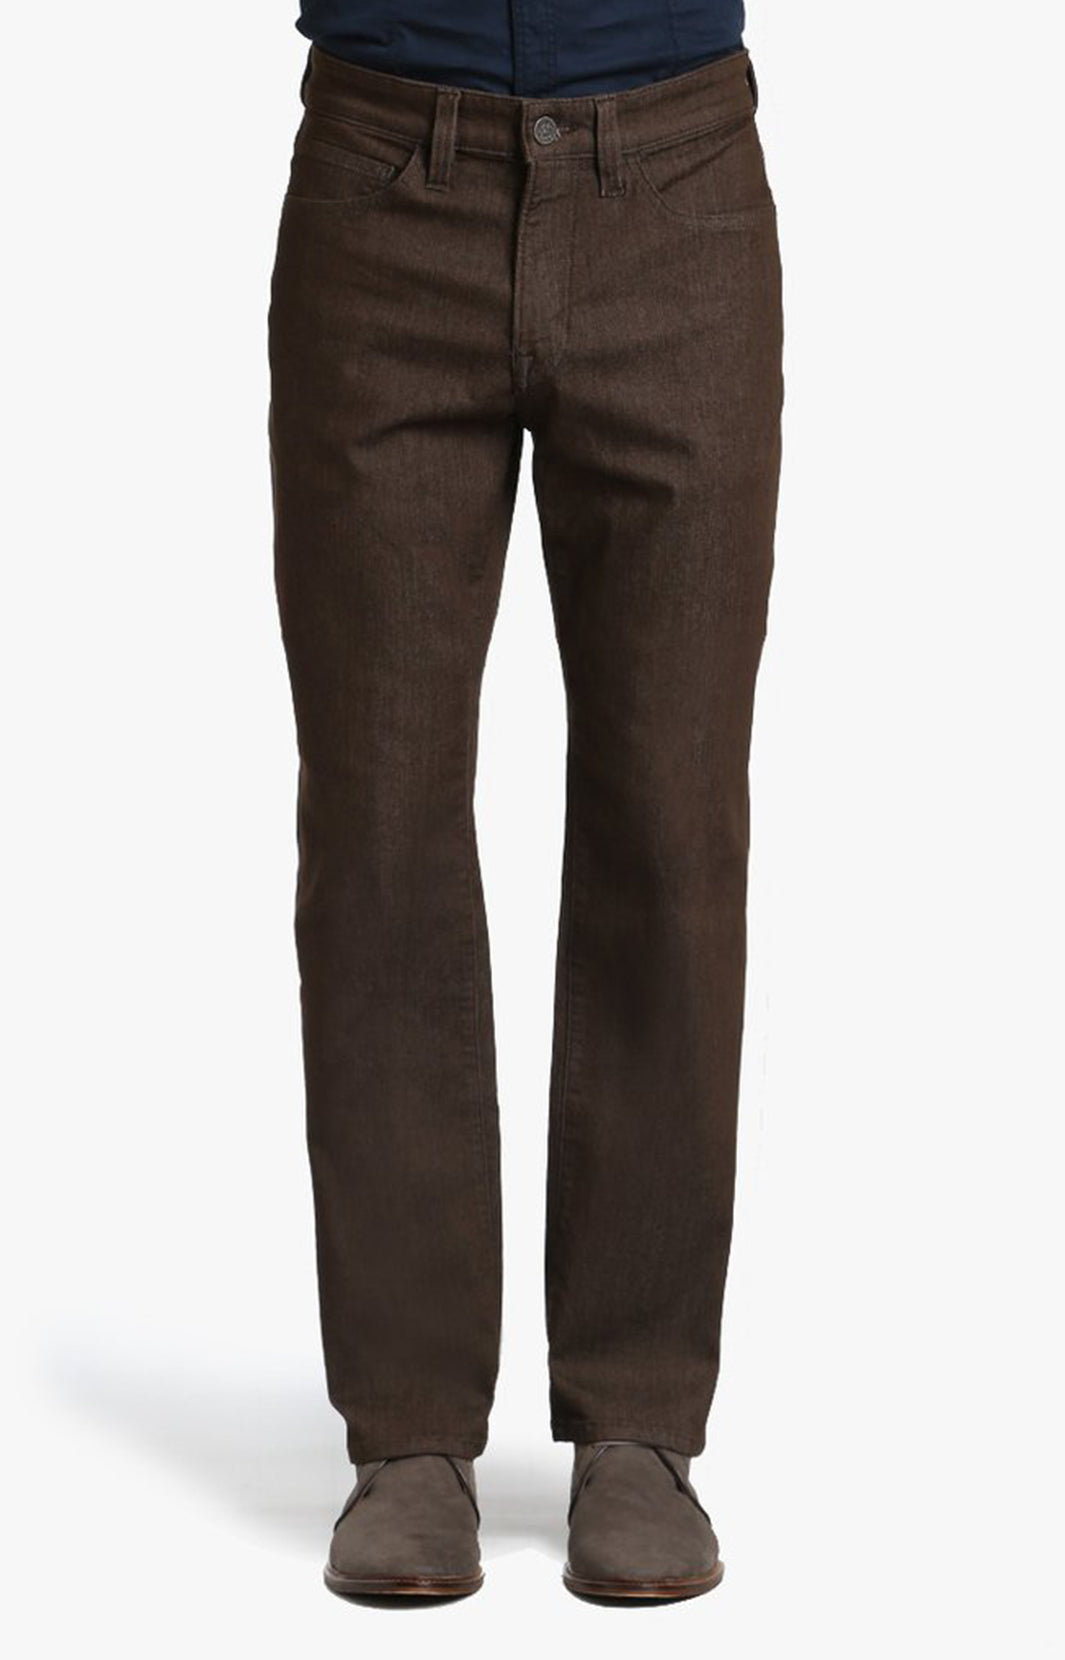 CHARISMA CLASSIC COMFORT JEANS - BROWN